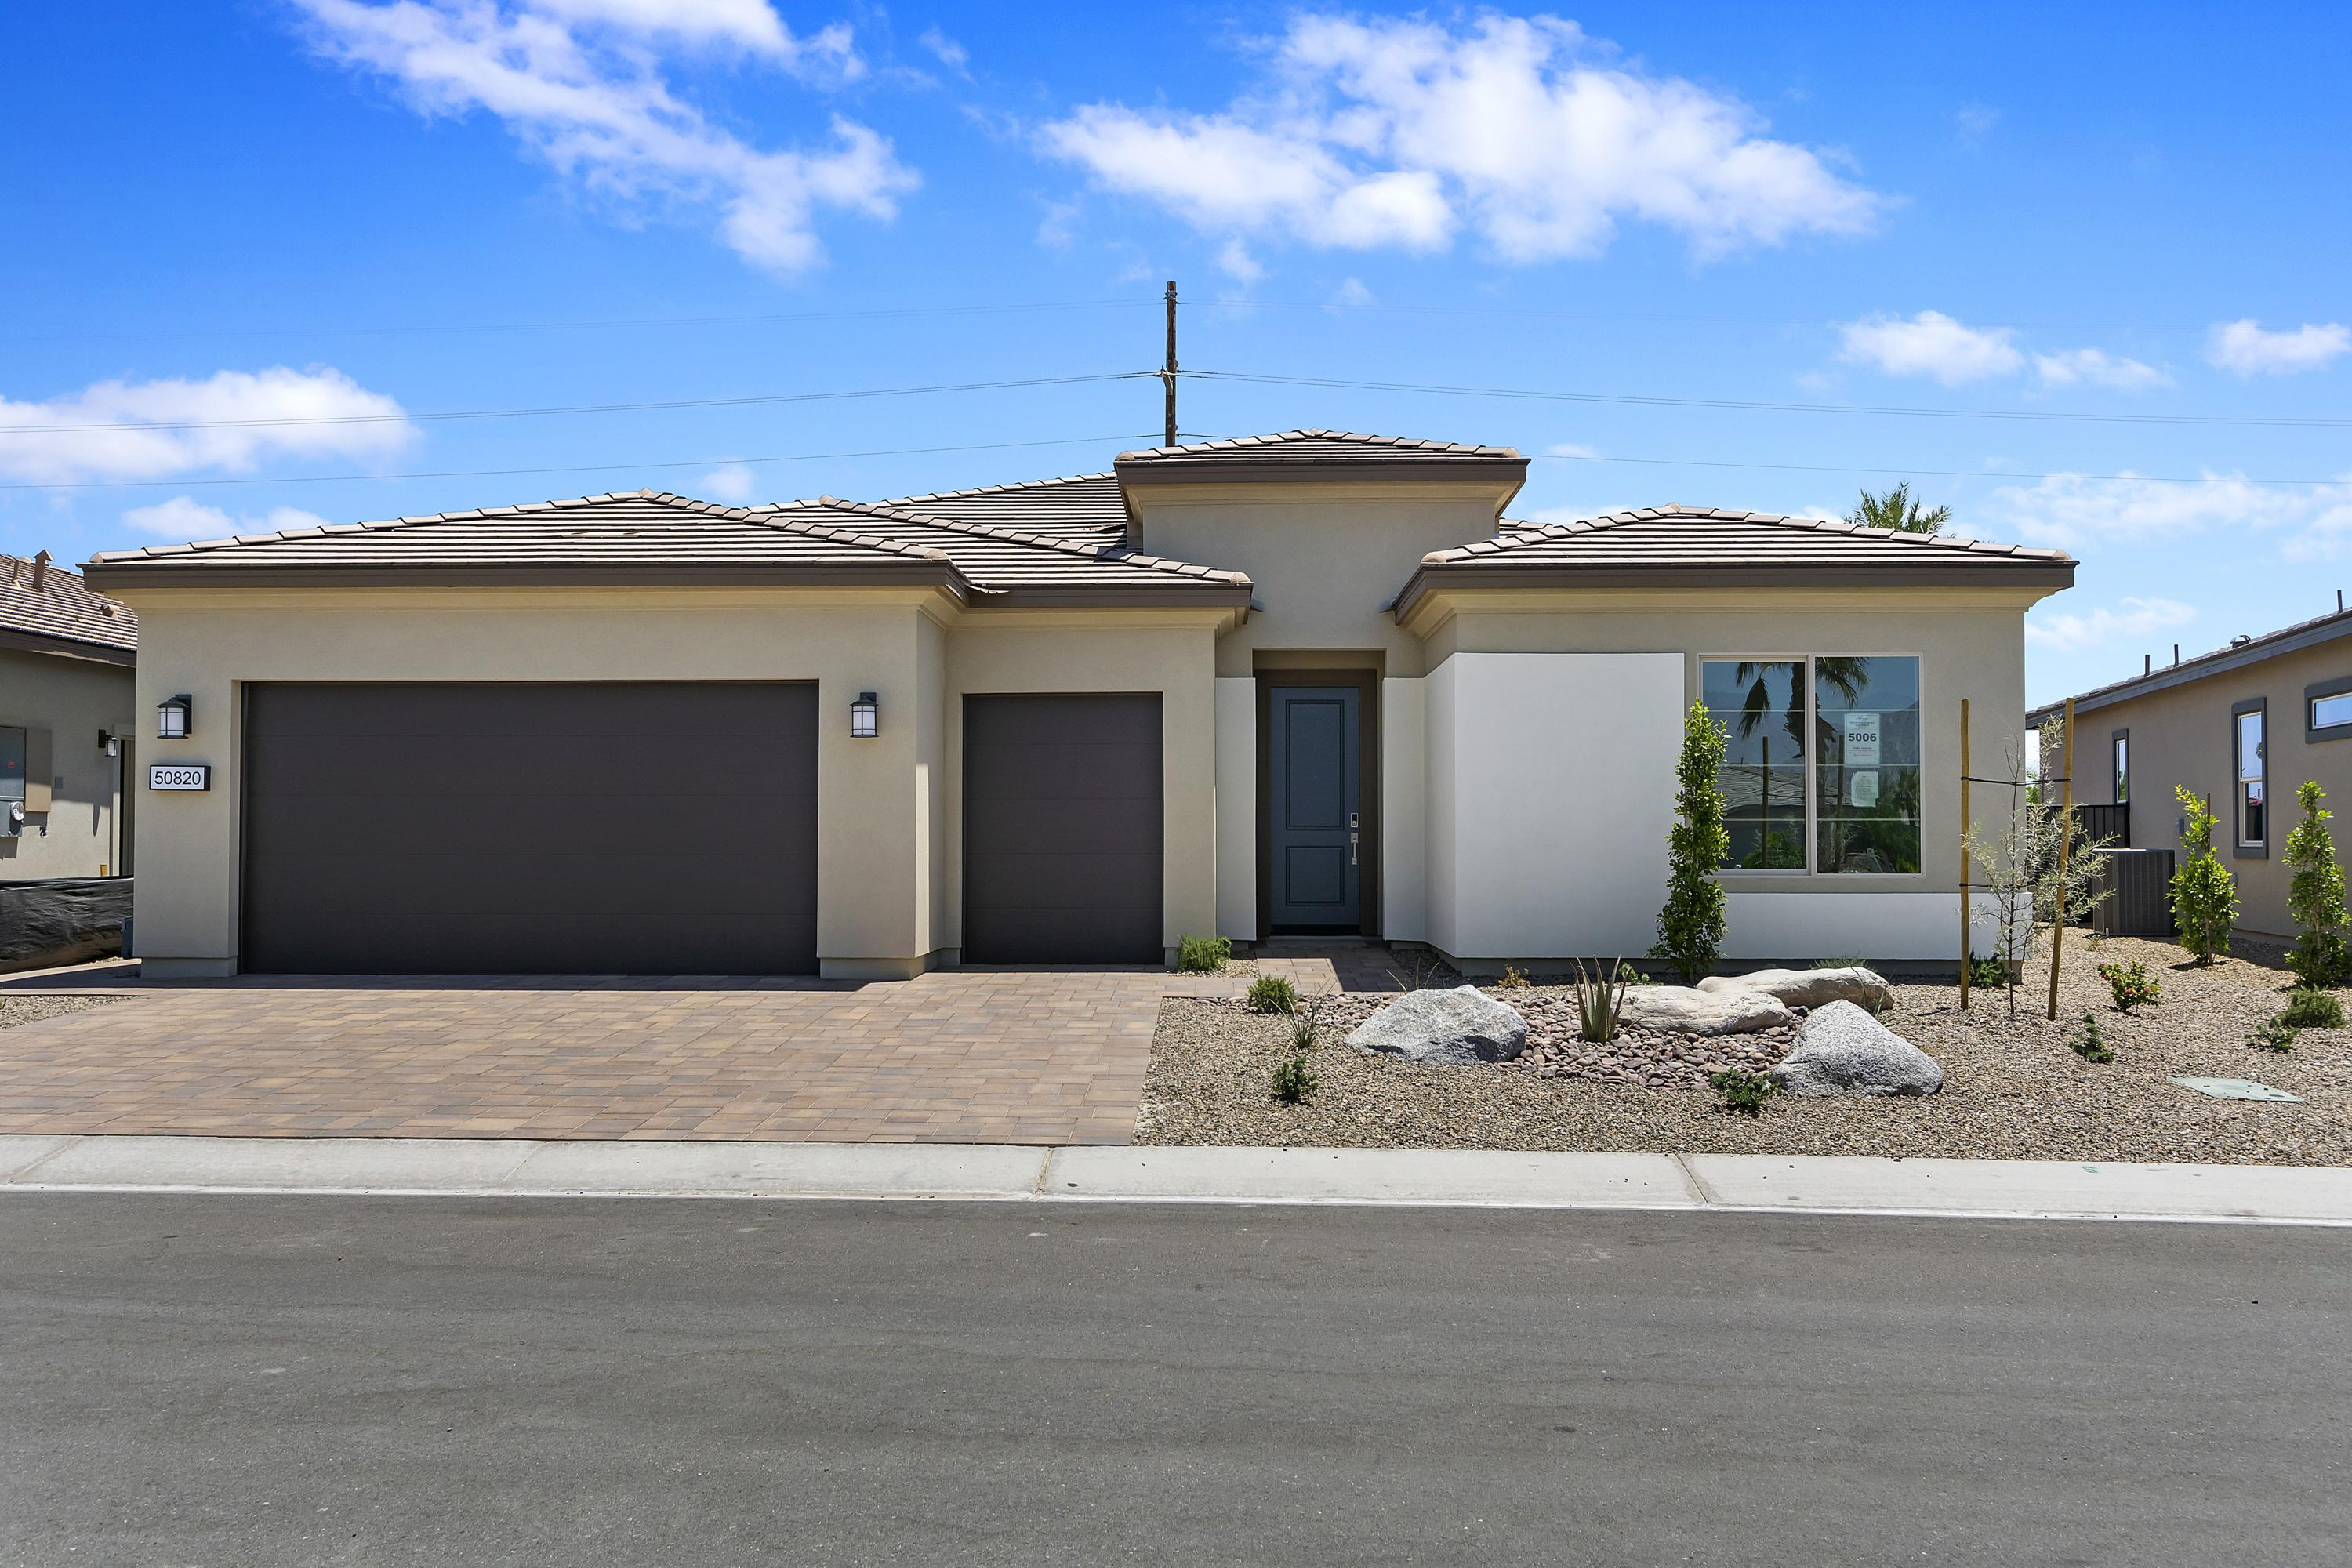 Photo of 50820 Monterey Canyon (Lot 5006) Drive, Indio, CA 92201